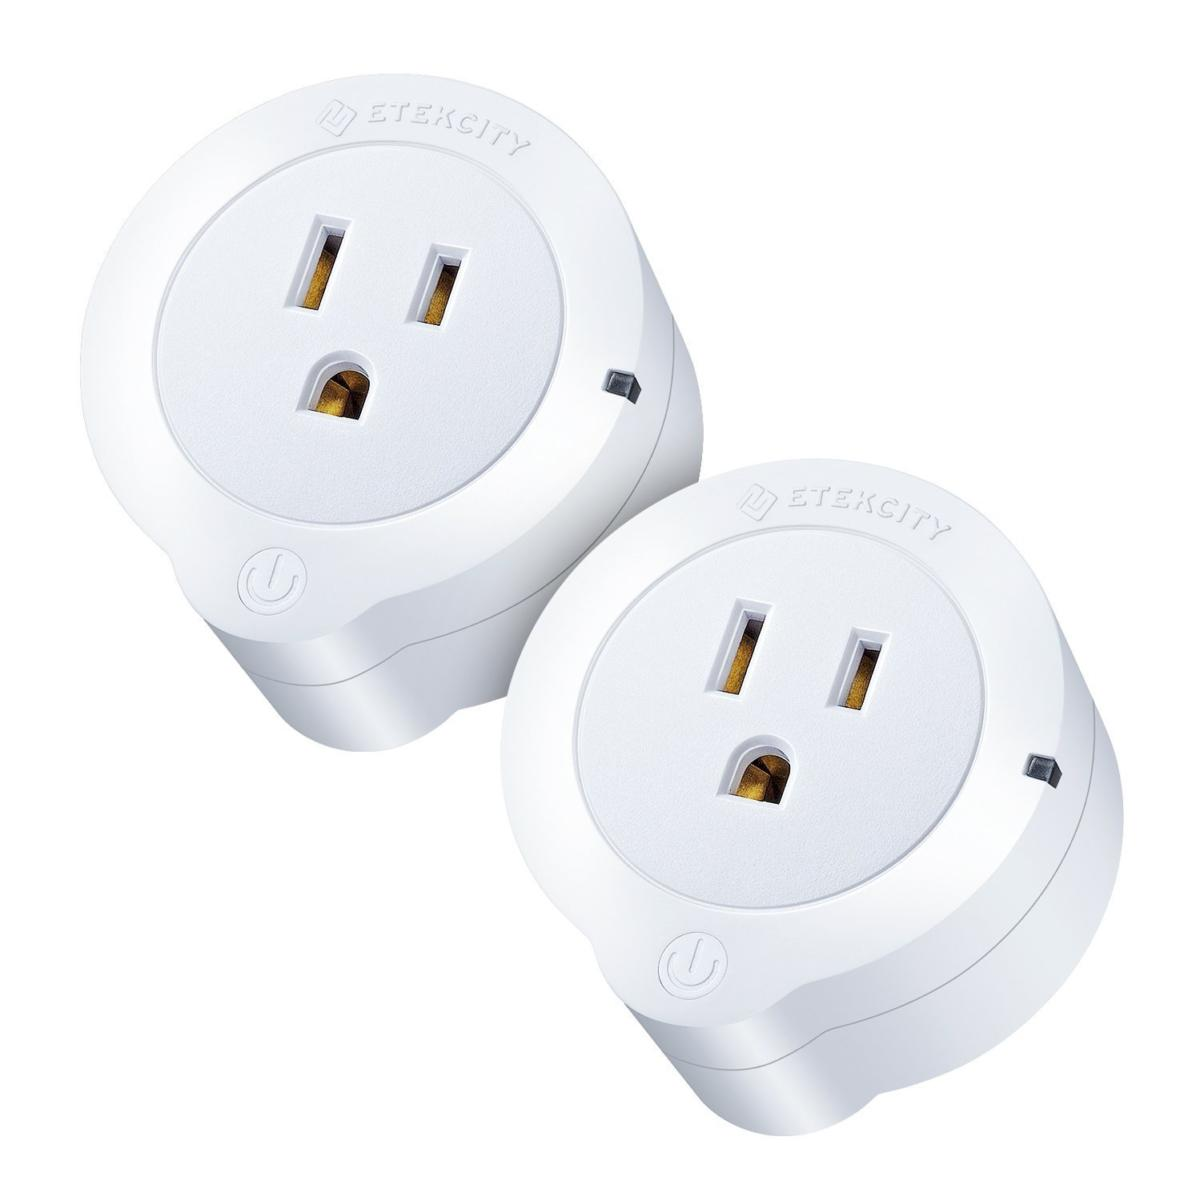 29 For Two Etekcity Smart Plugs With Alexa Compatibility